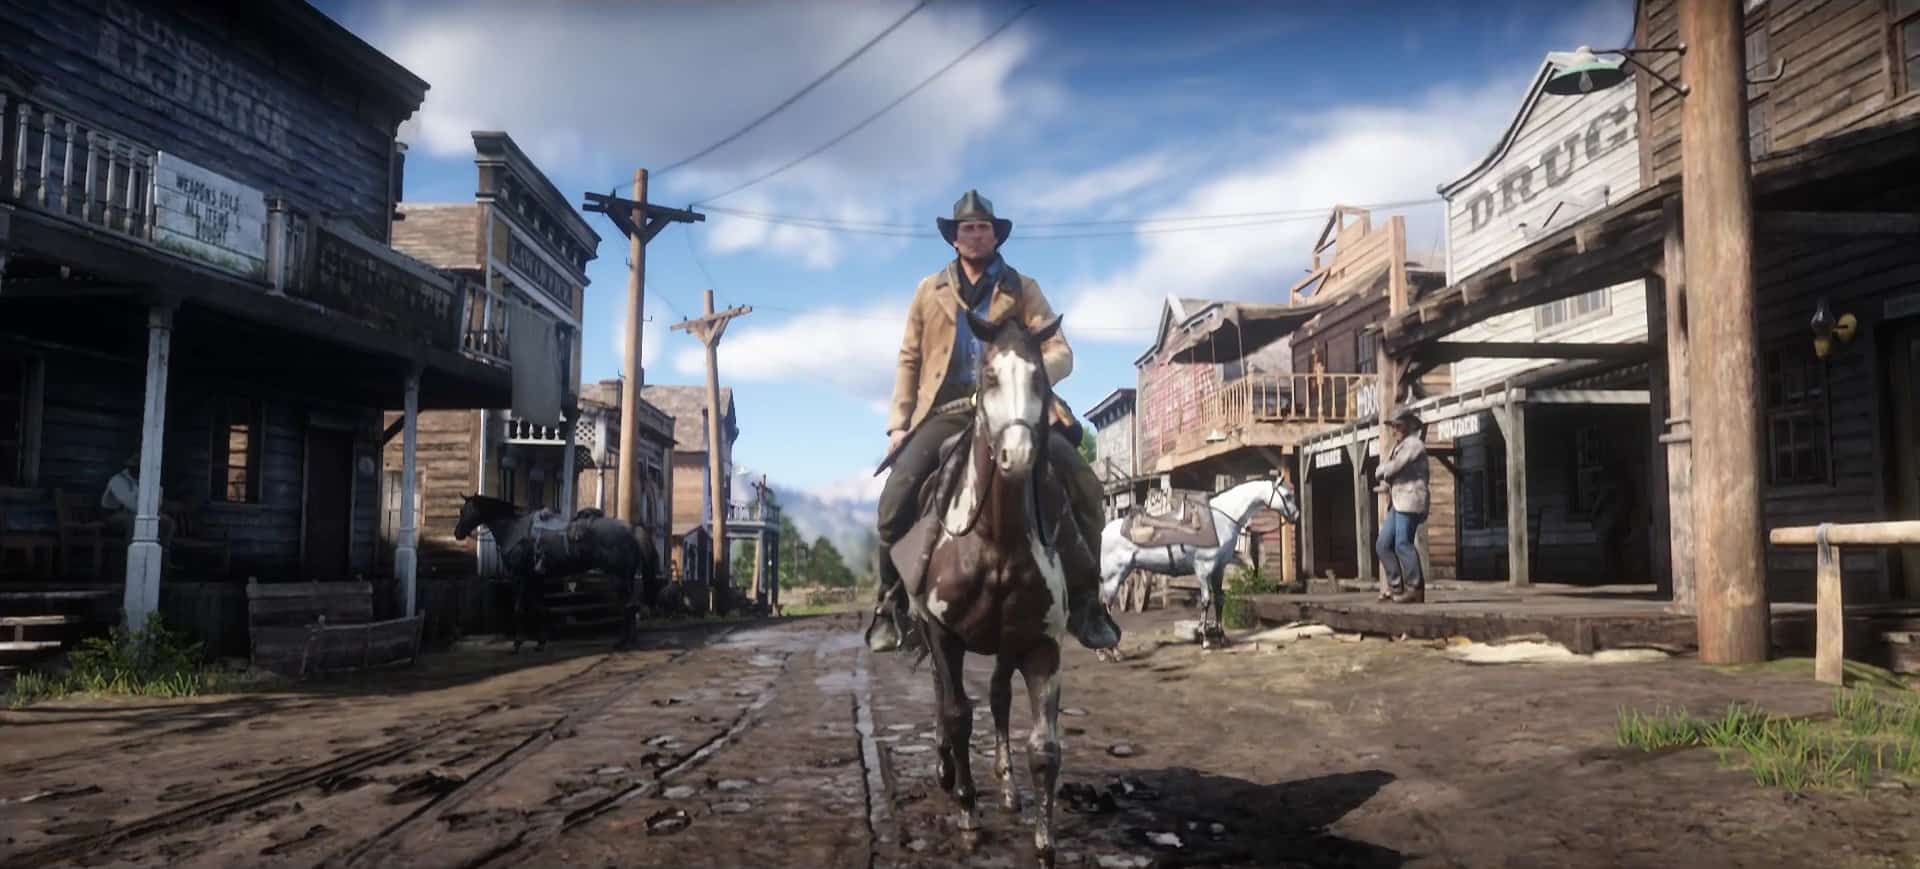 Red Dead Redemtion 2 была на E3 2018?